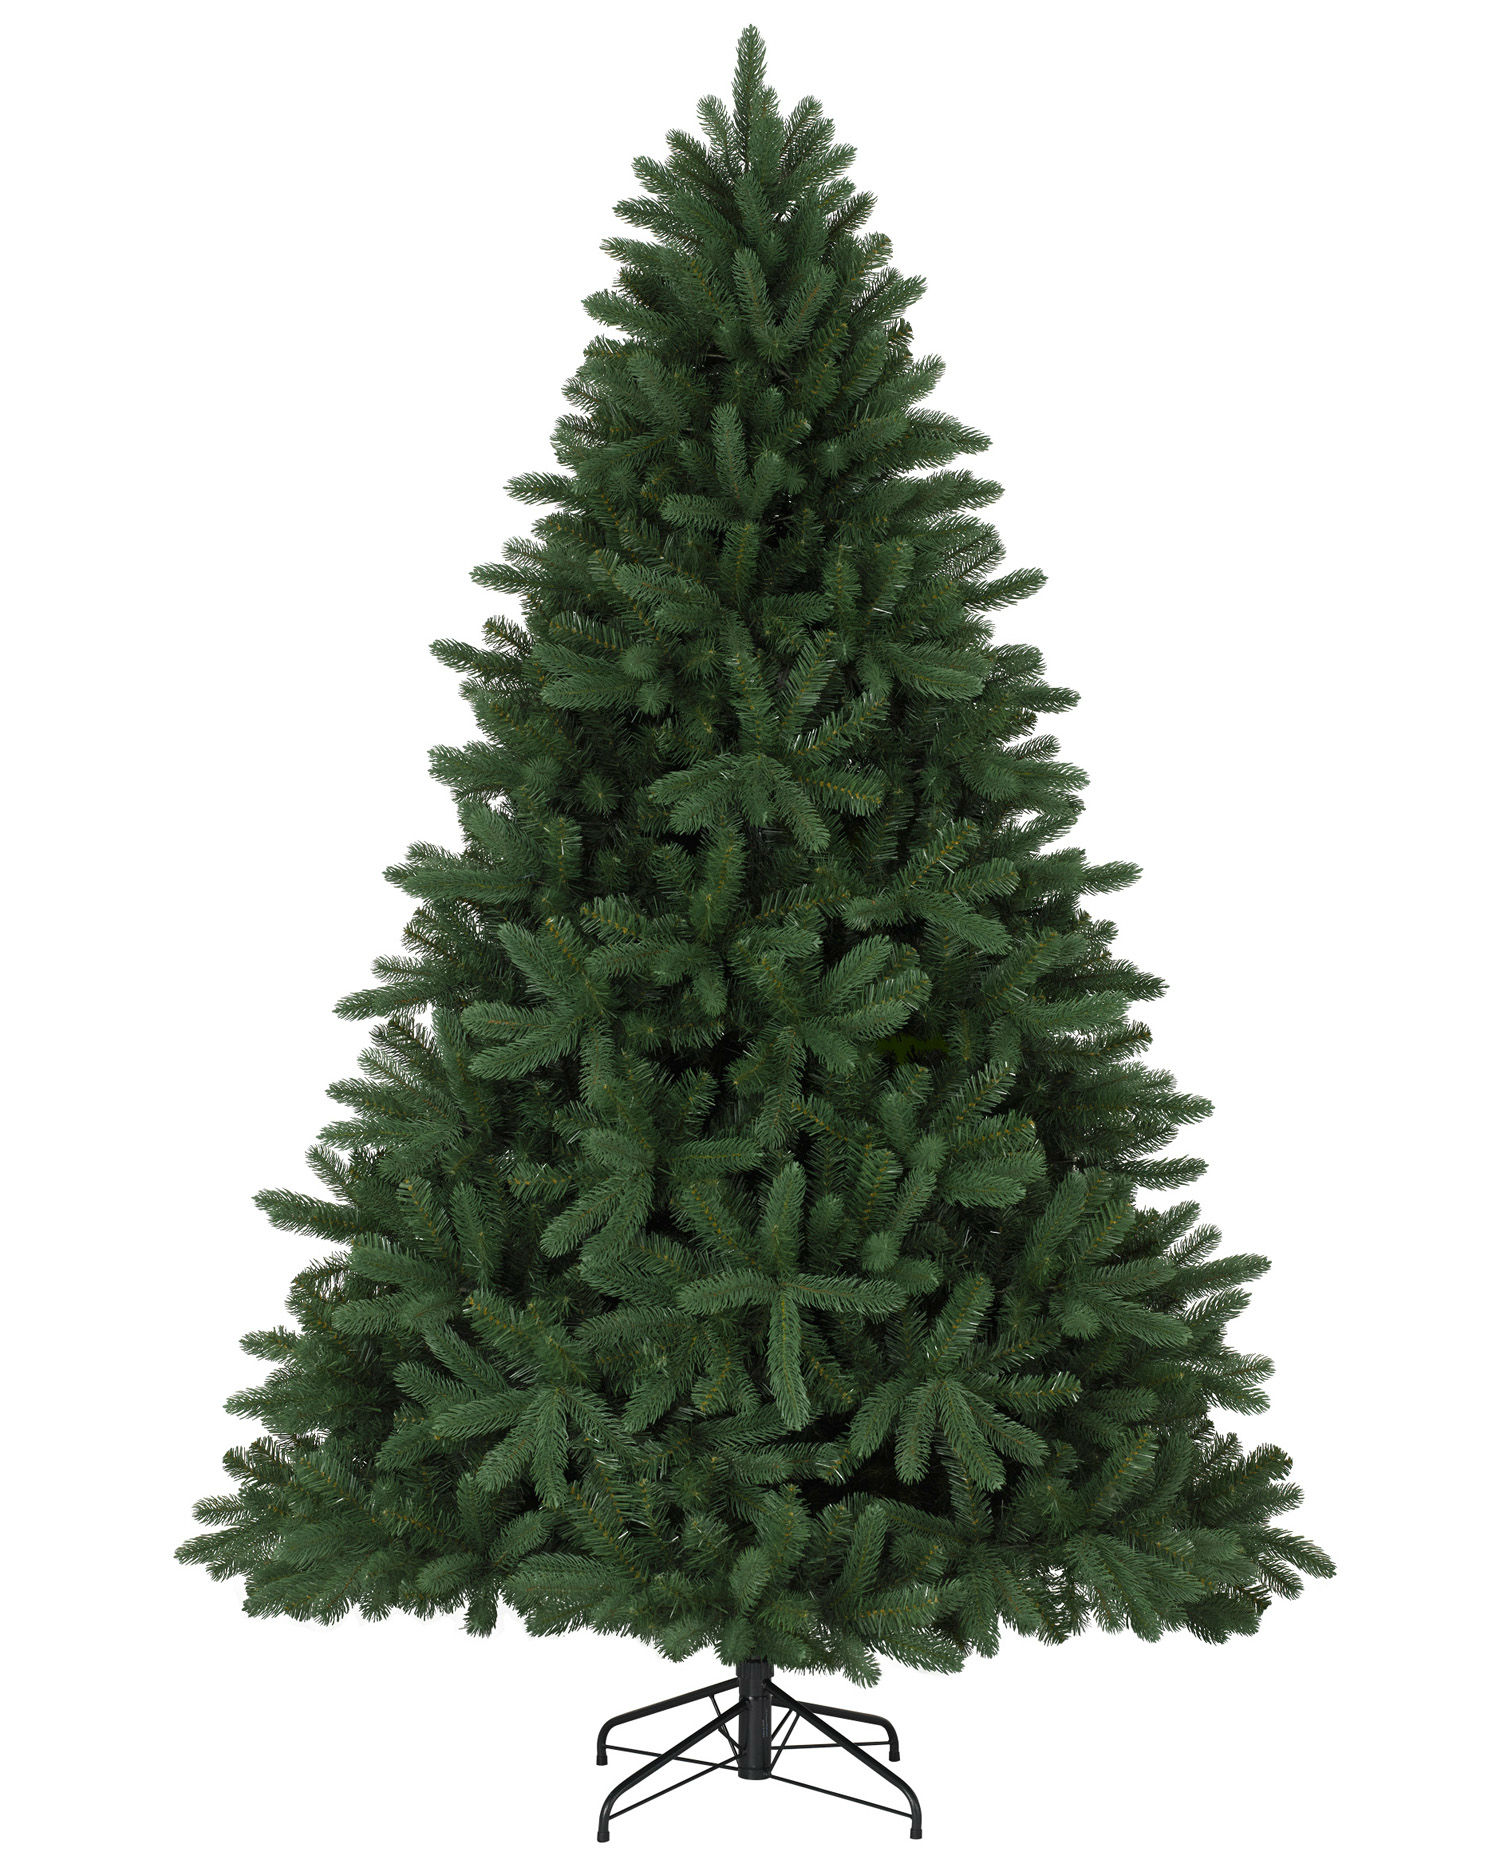 8 ft alberta spruce unlit evergreen artificial christmas tree - 8 Ft Christmas Tree